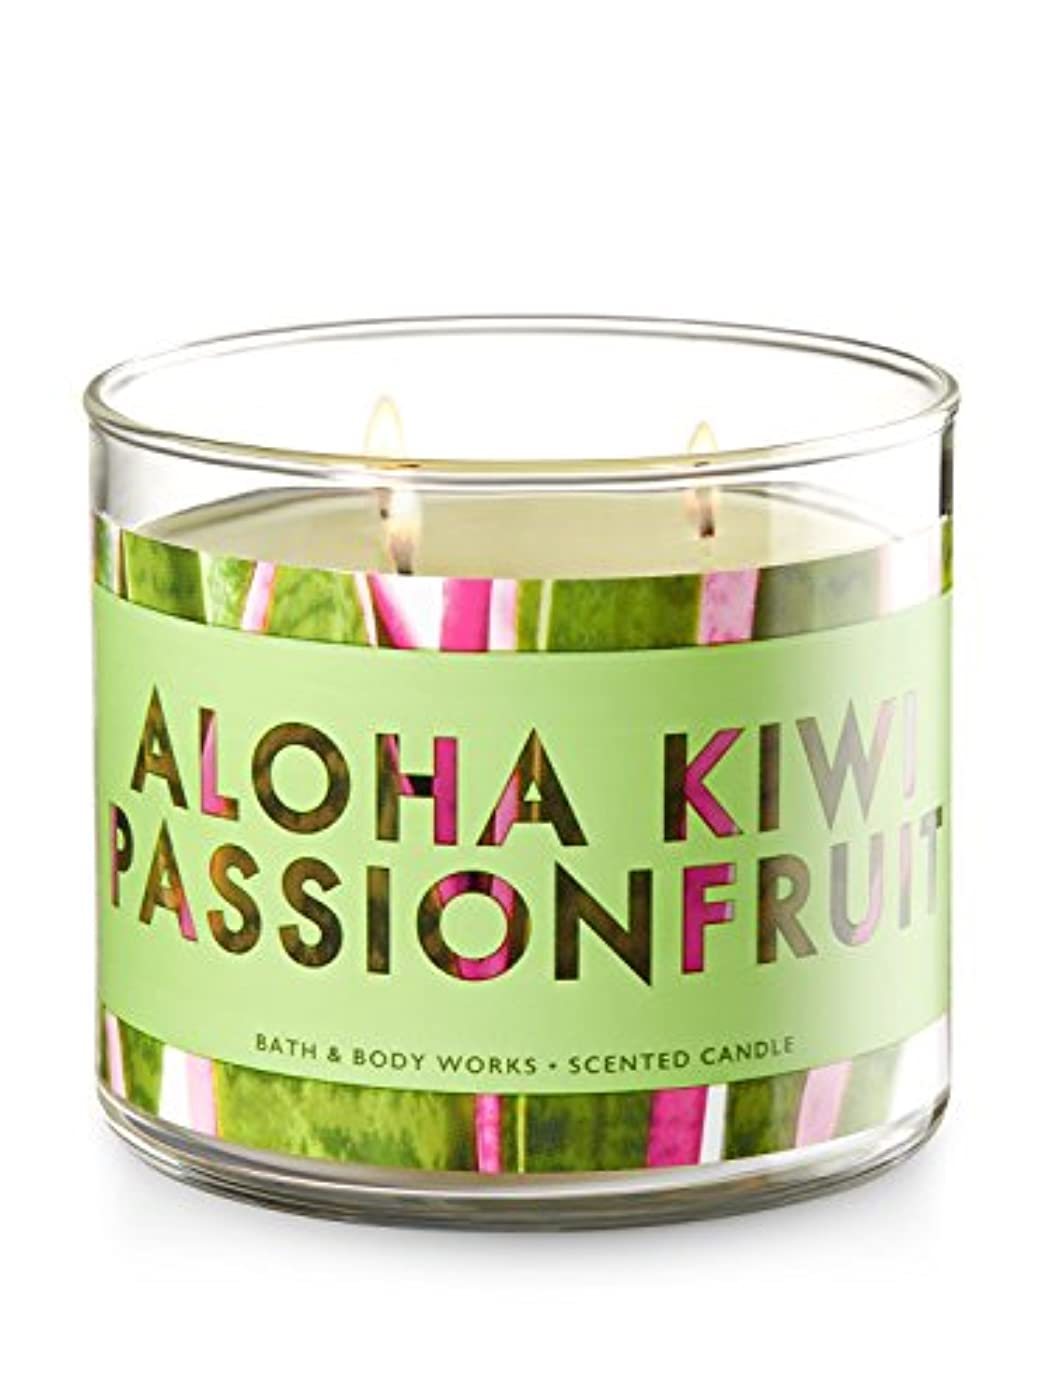 Bath and Body Works 3 Wick Scented Candle Aloha Kiwi Passionfruit 430ml